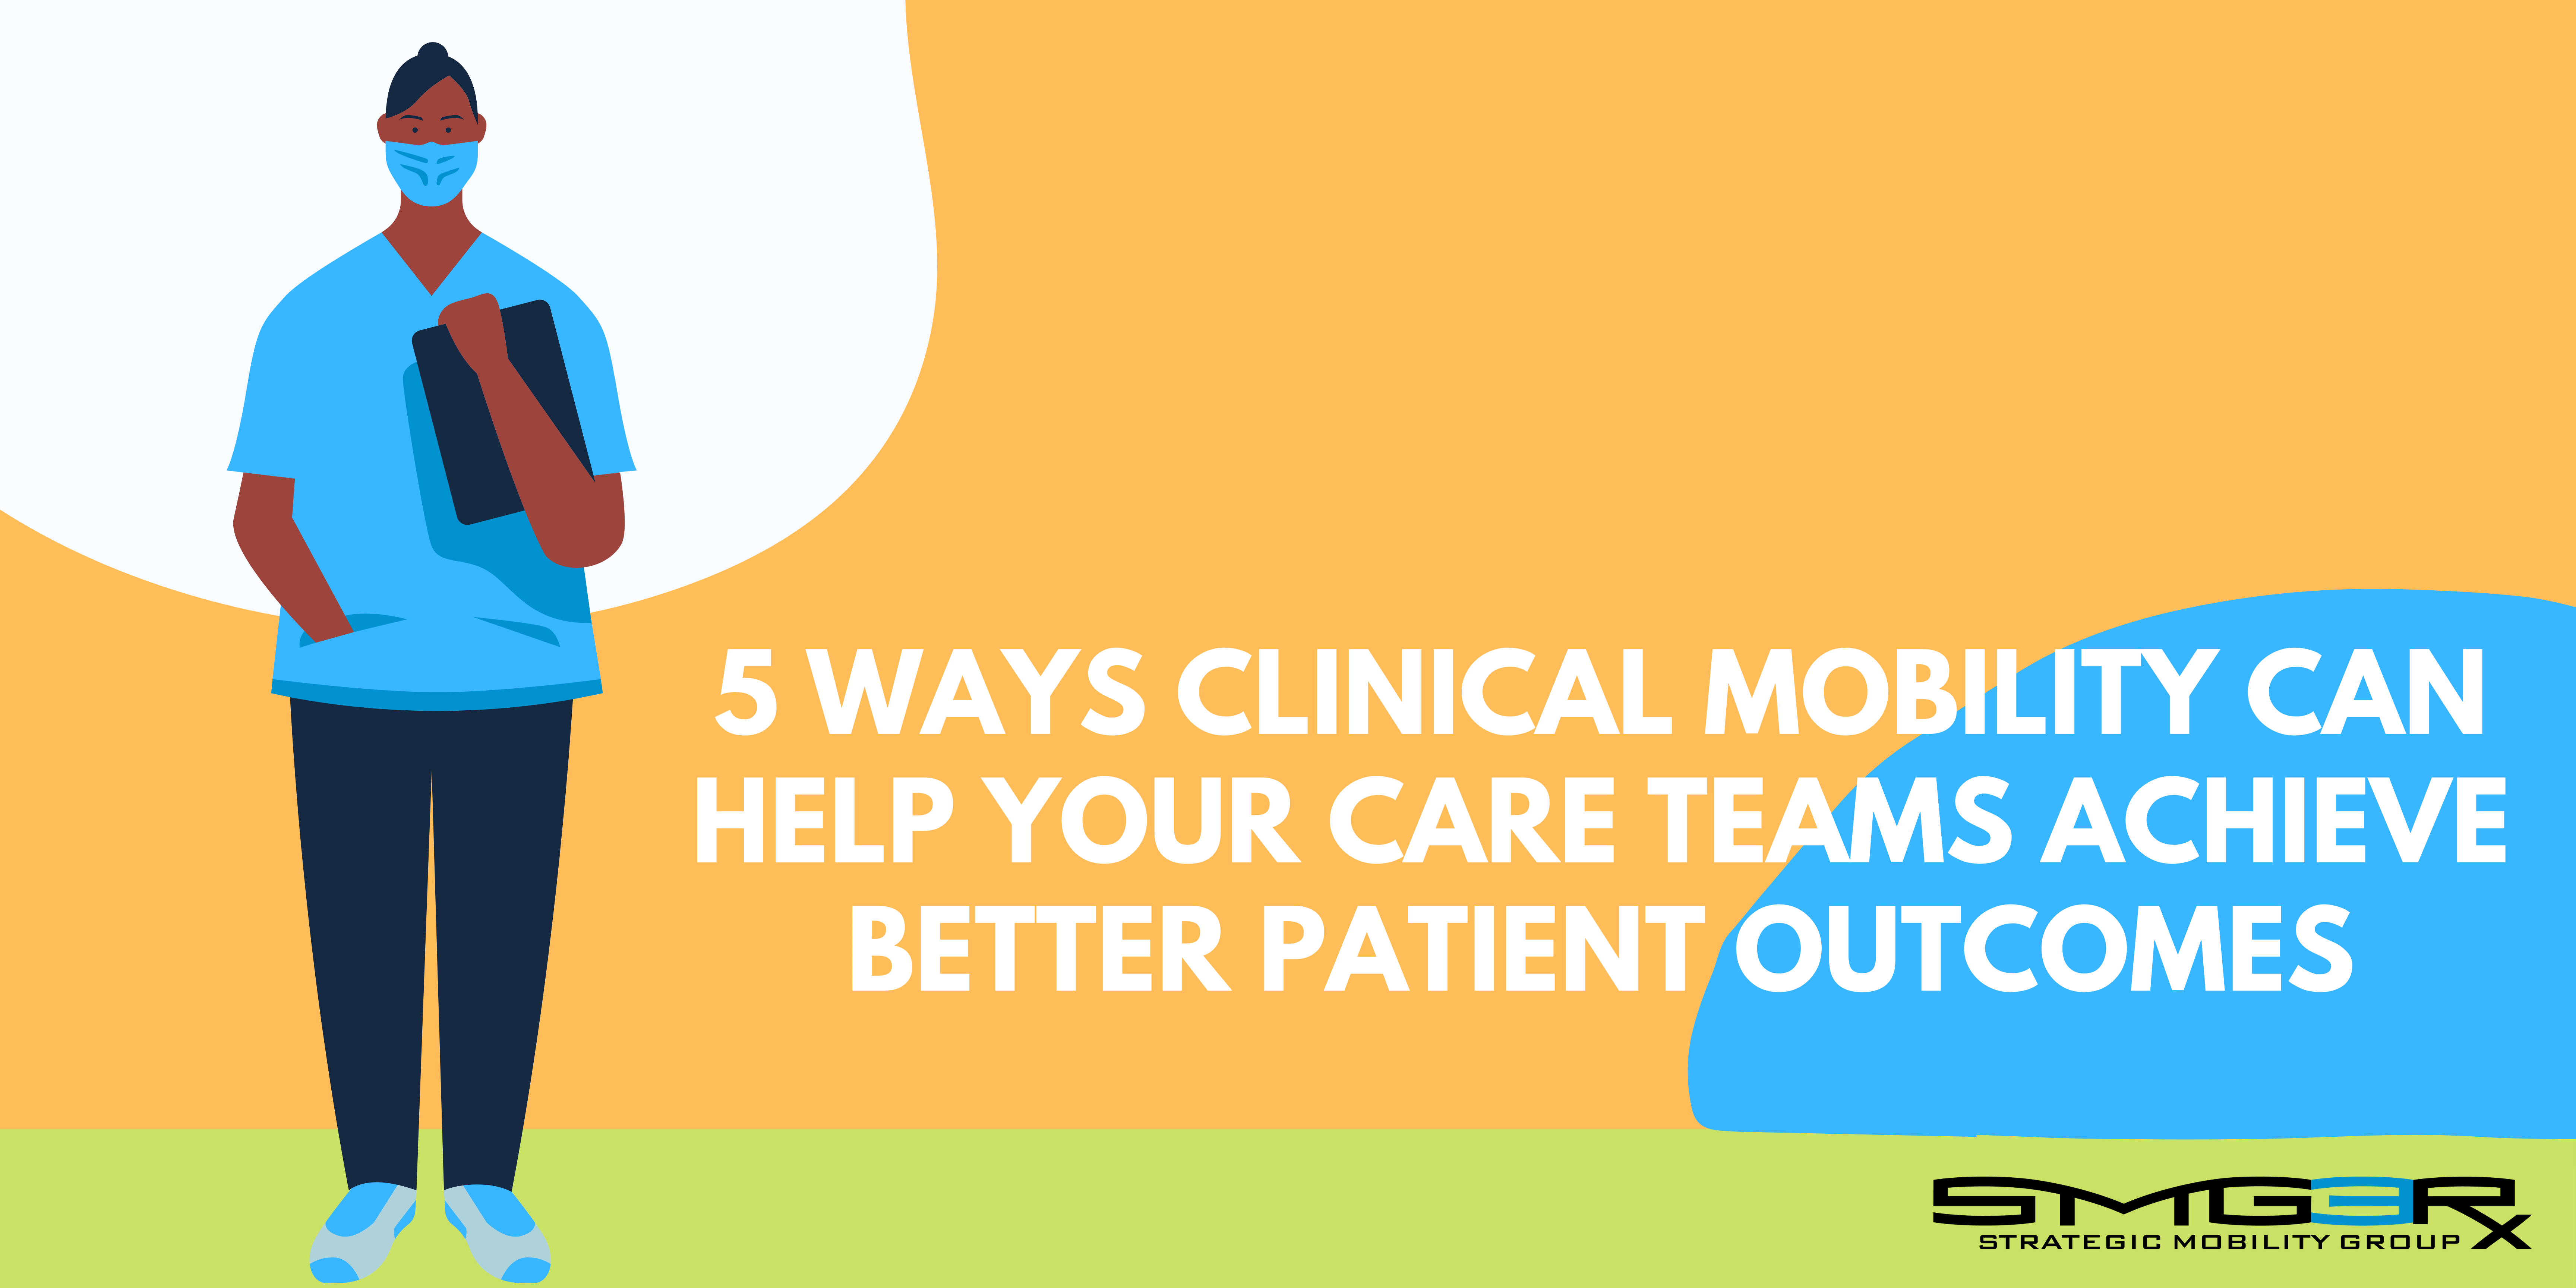 There's a Simpler Way to Improve Patient Outcomes - The Answer is Enhanced Clinical Mobility Through Smartphones